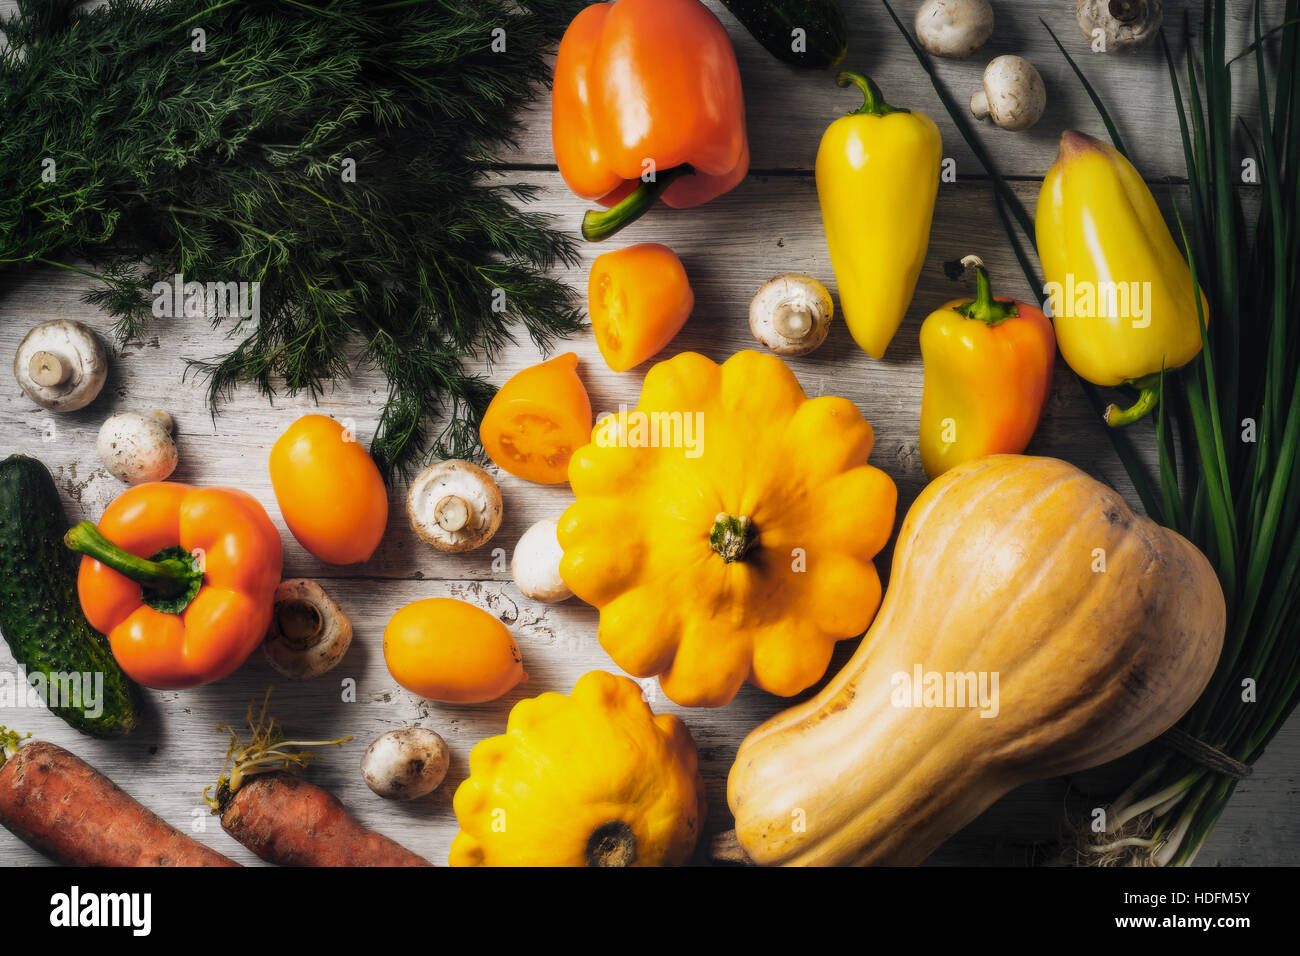 Yellow and green vegetables on the white wooden table horizontal - Stock Image